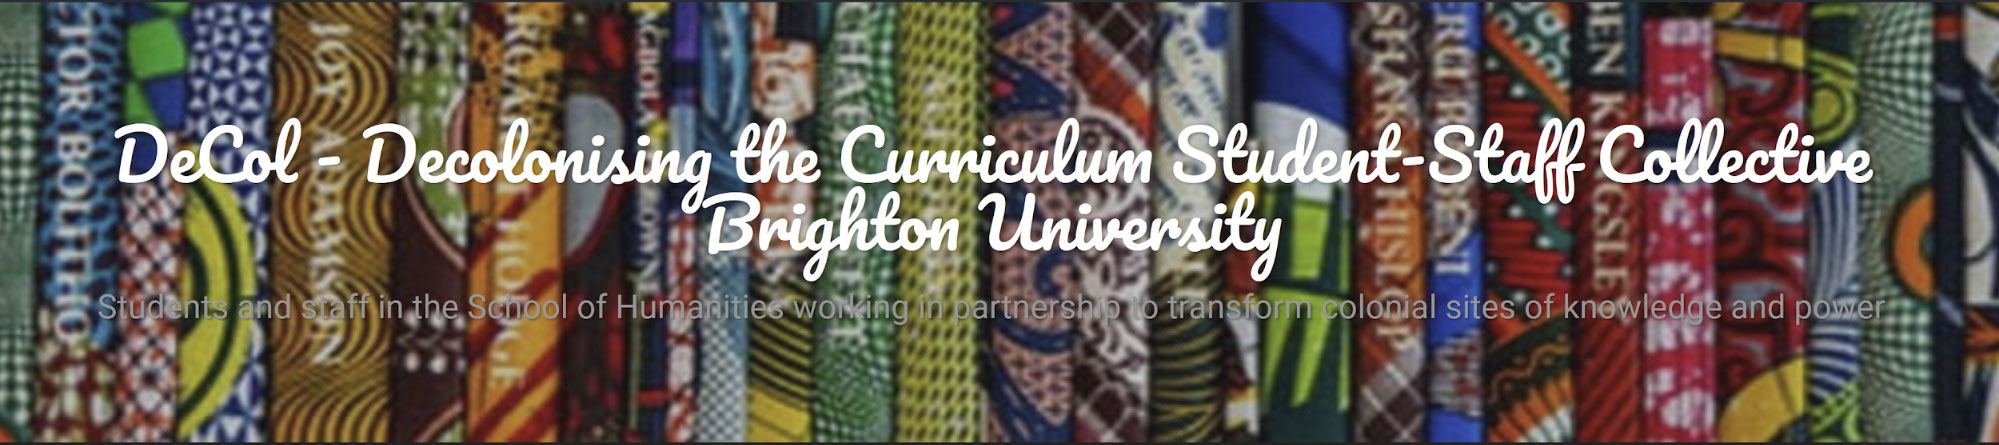 "Presentation of the BRIDGES Project at ""Decolonising the Curriculum Seminar Series"", in the University of Brighton"